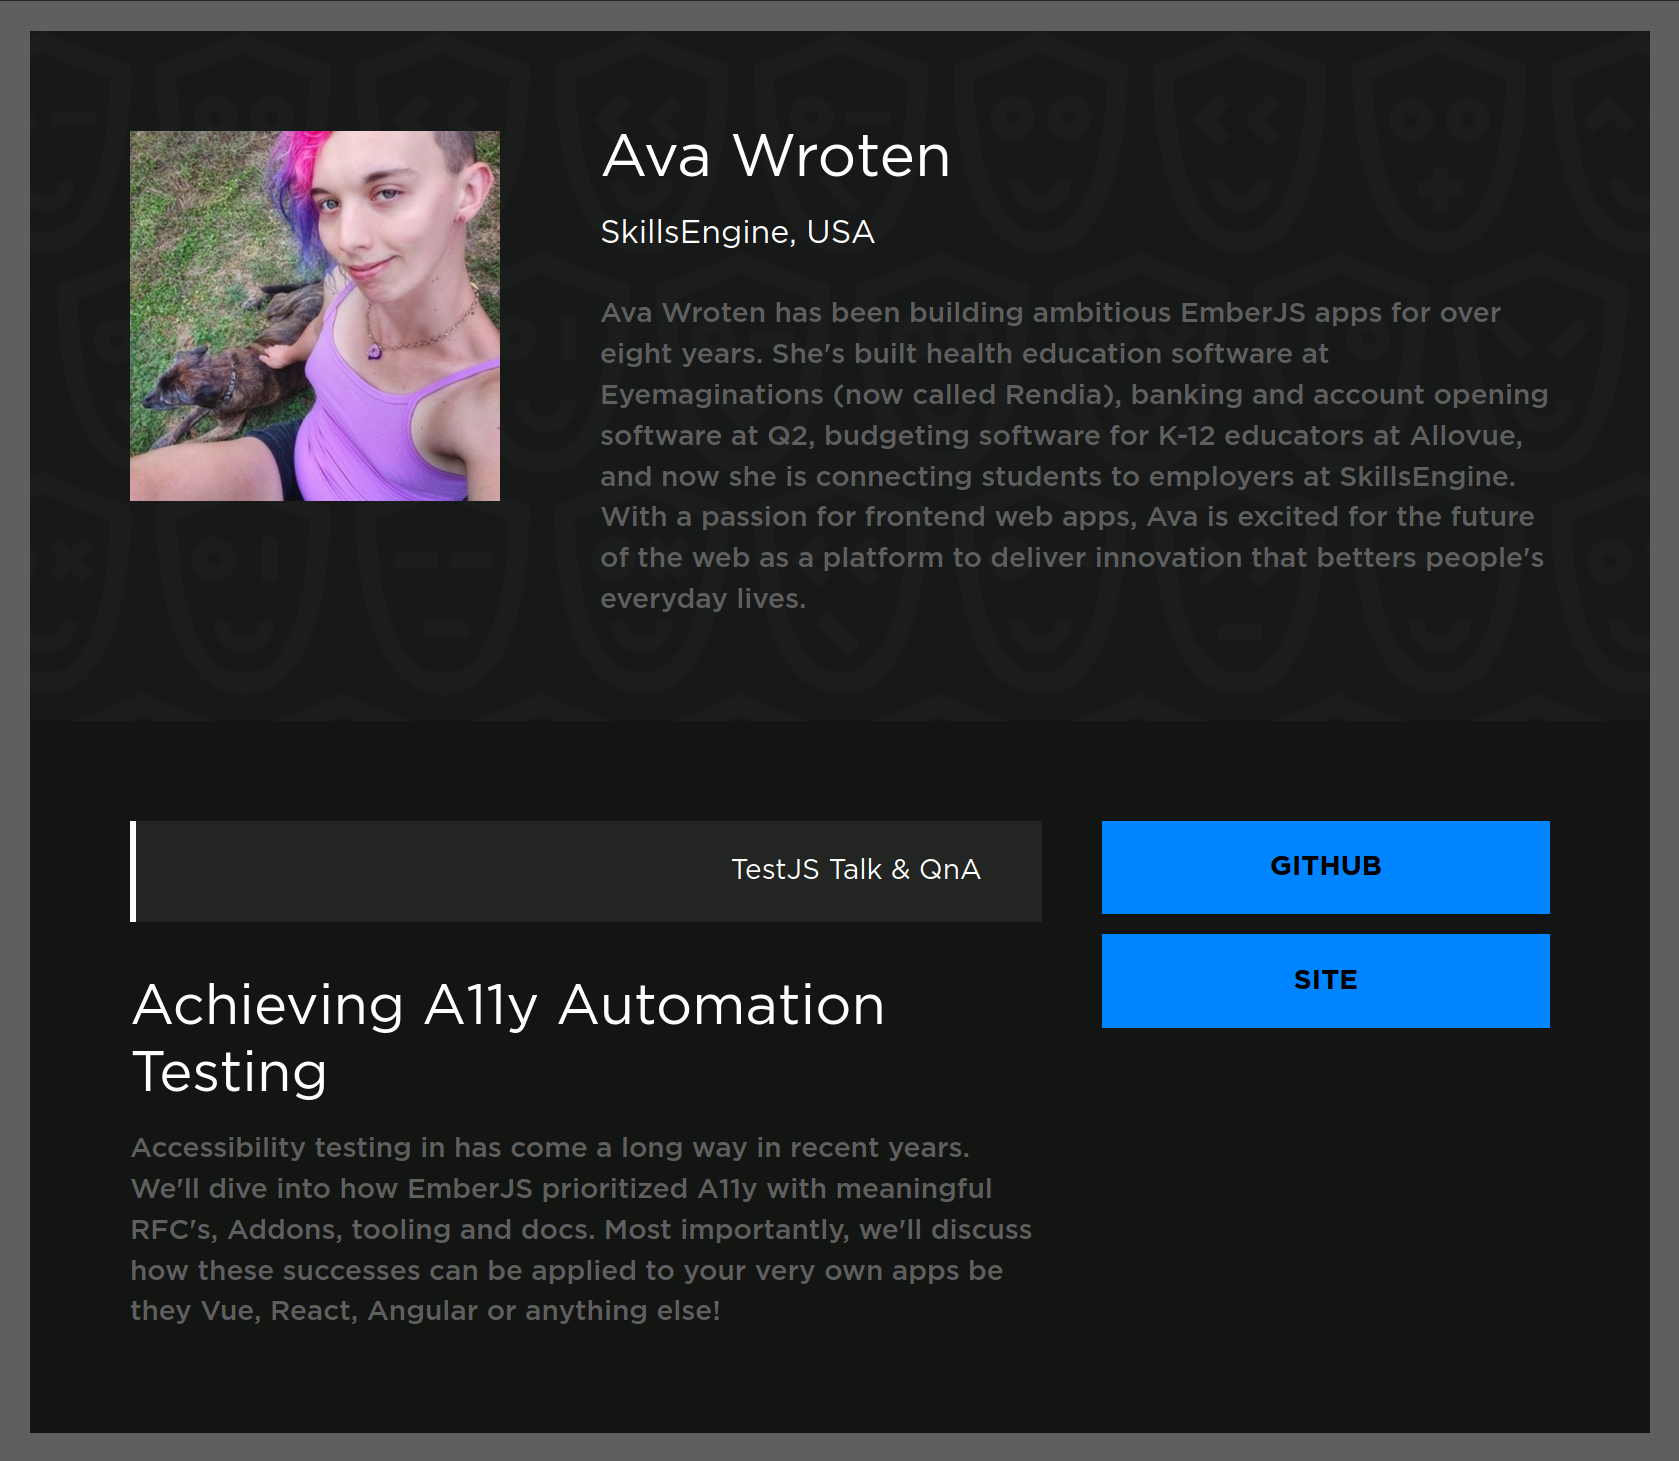 Achieving A11y Automation Testing: Accessibility testing in has come a long way in recent years. We'll dive into how EmberJS prioritized A11y with meaningful RFC's, Addons, tooling and docs. Most importantly, we'll discuss how these successes can be applied to your very own apps be they Vue, React, Angular or anything else!